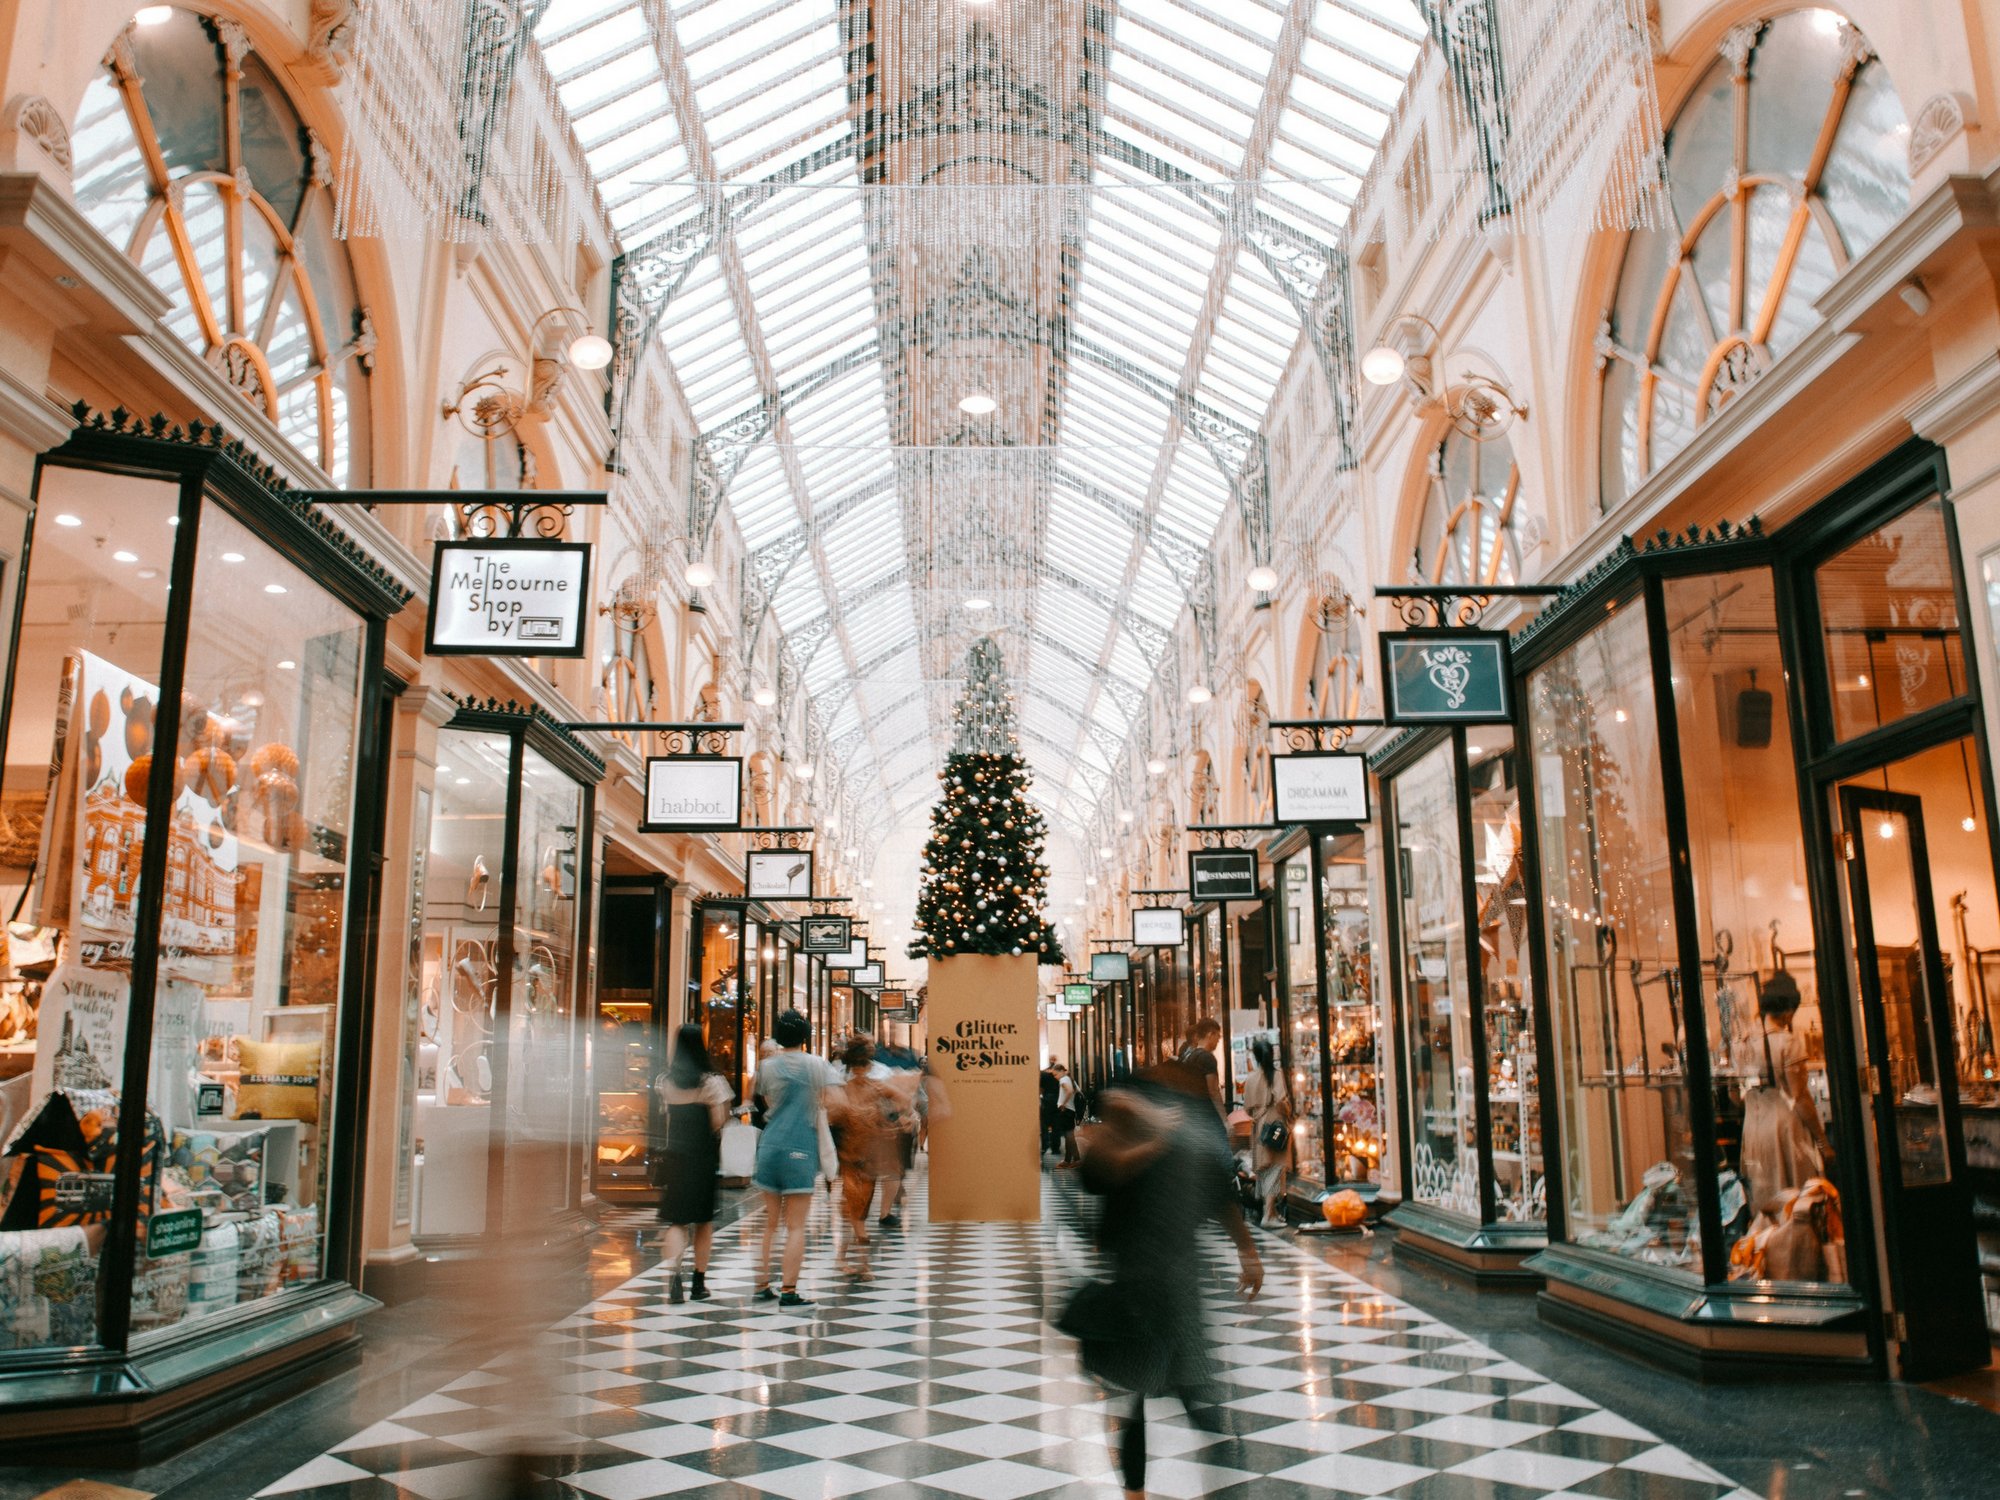 Retail - IT plays an increasingly important role in the management of complex retail operations. Many retailers rely on technology to collect customer data, look up items, complete point of sale transactions and stay secure with CCTV.